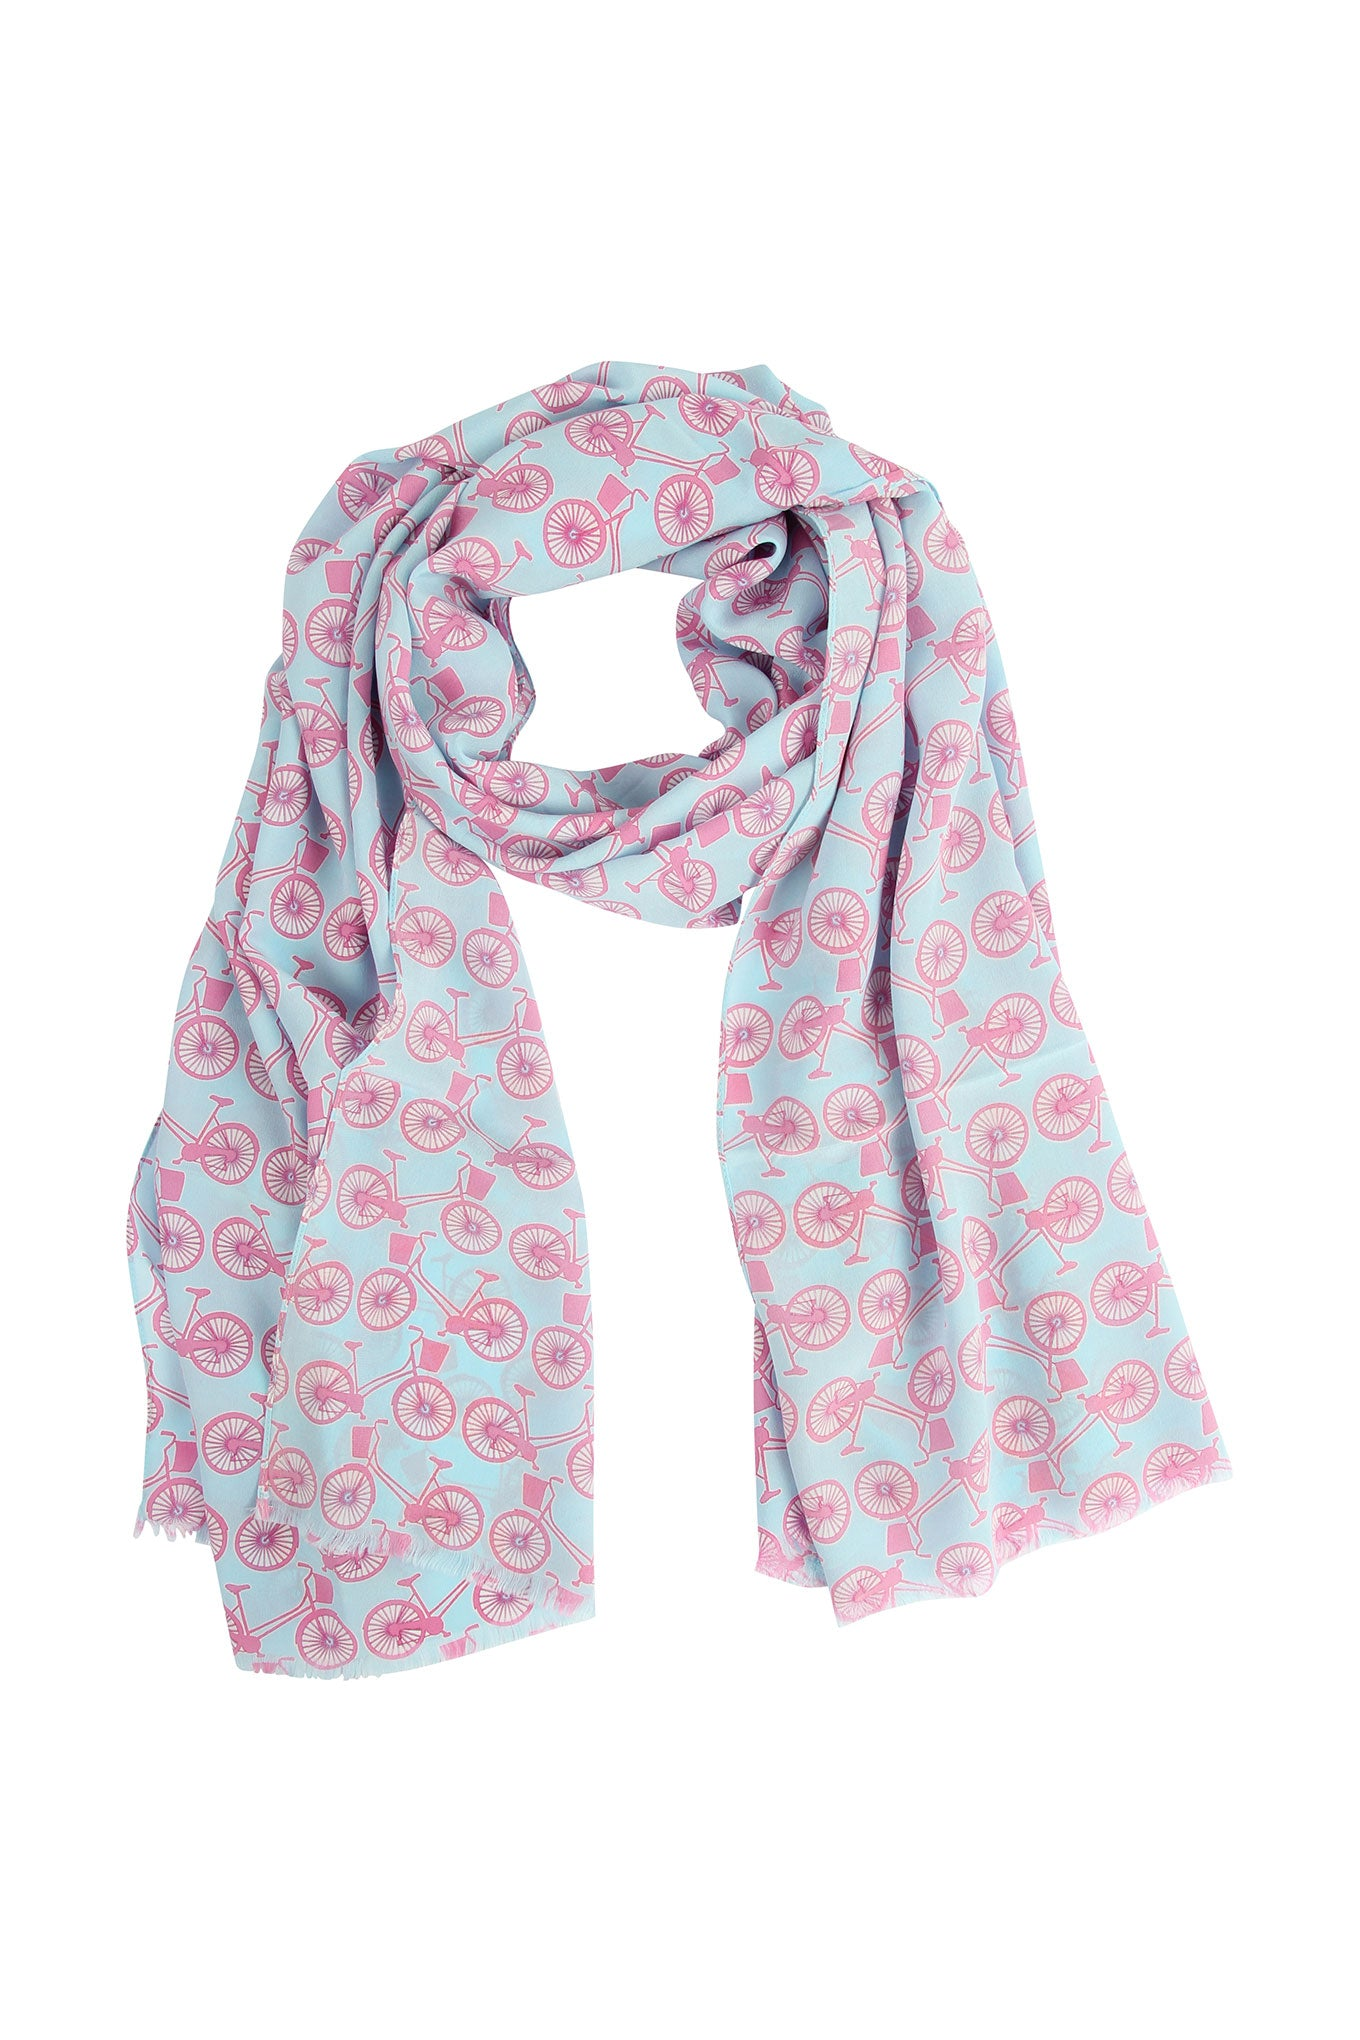 Lotty B Silk Crepe-de-Chine Long Scarf BICYCLE REPEAT - PINK